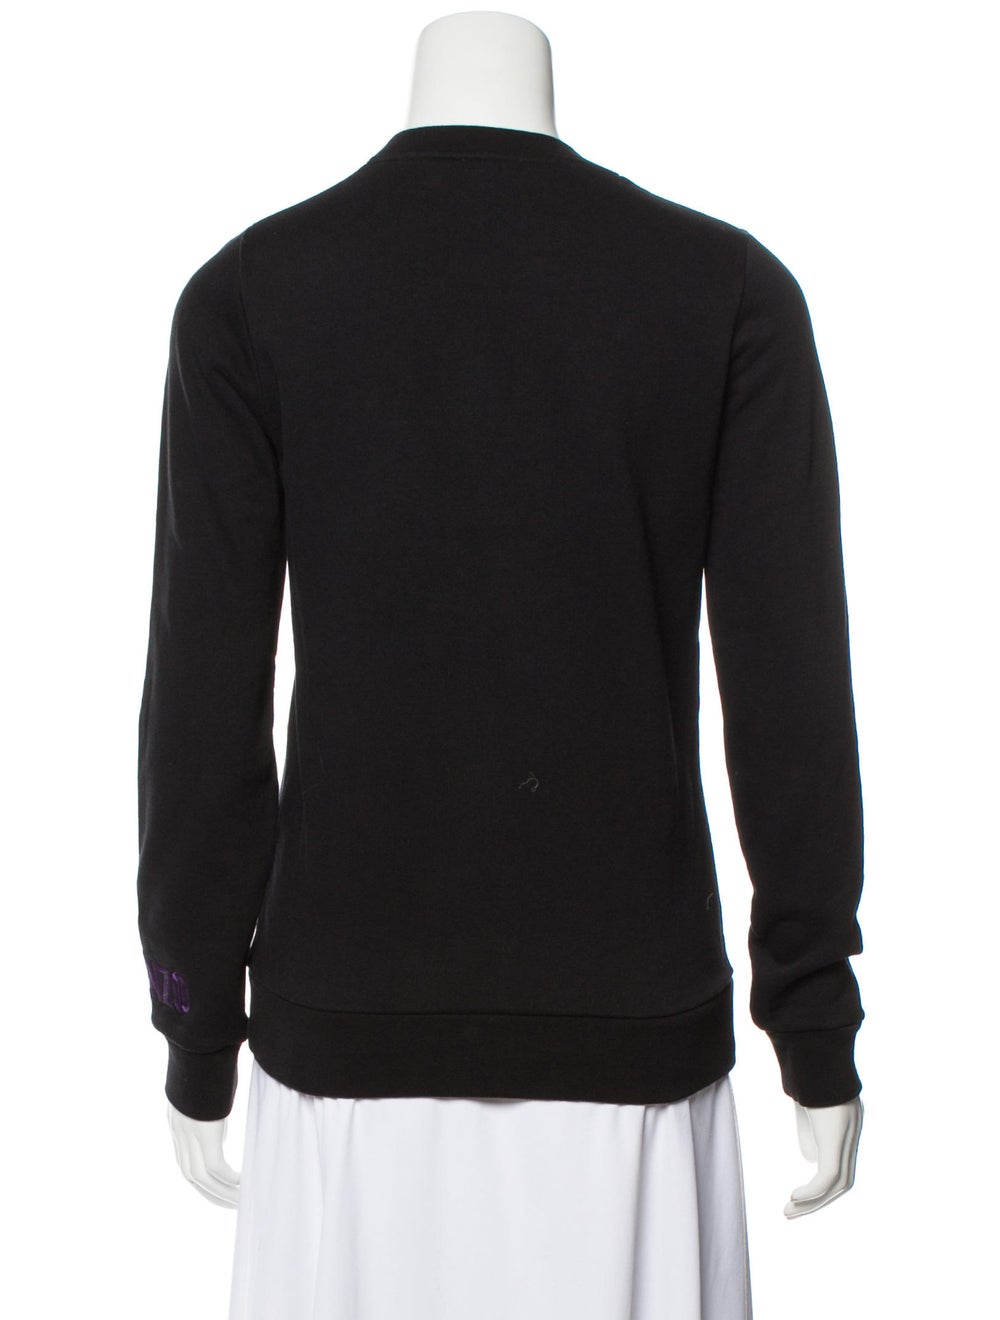 Kenzo Embroidered Knit Sweater Black - image 3